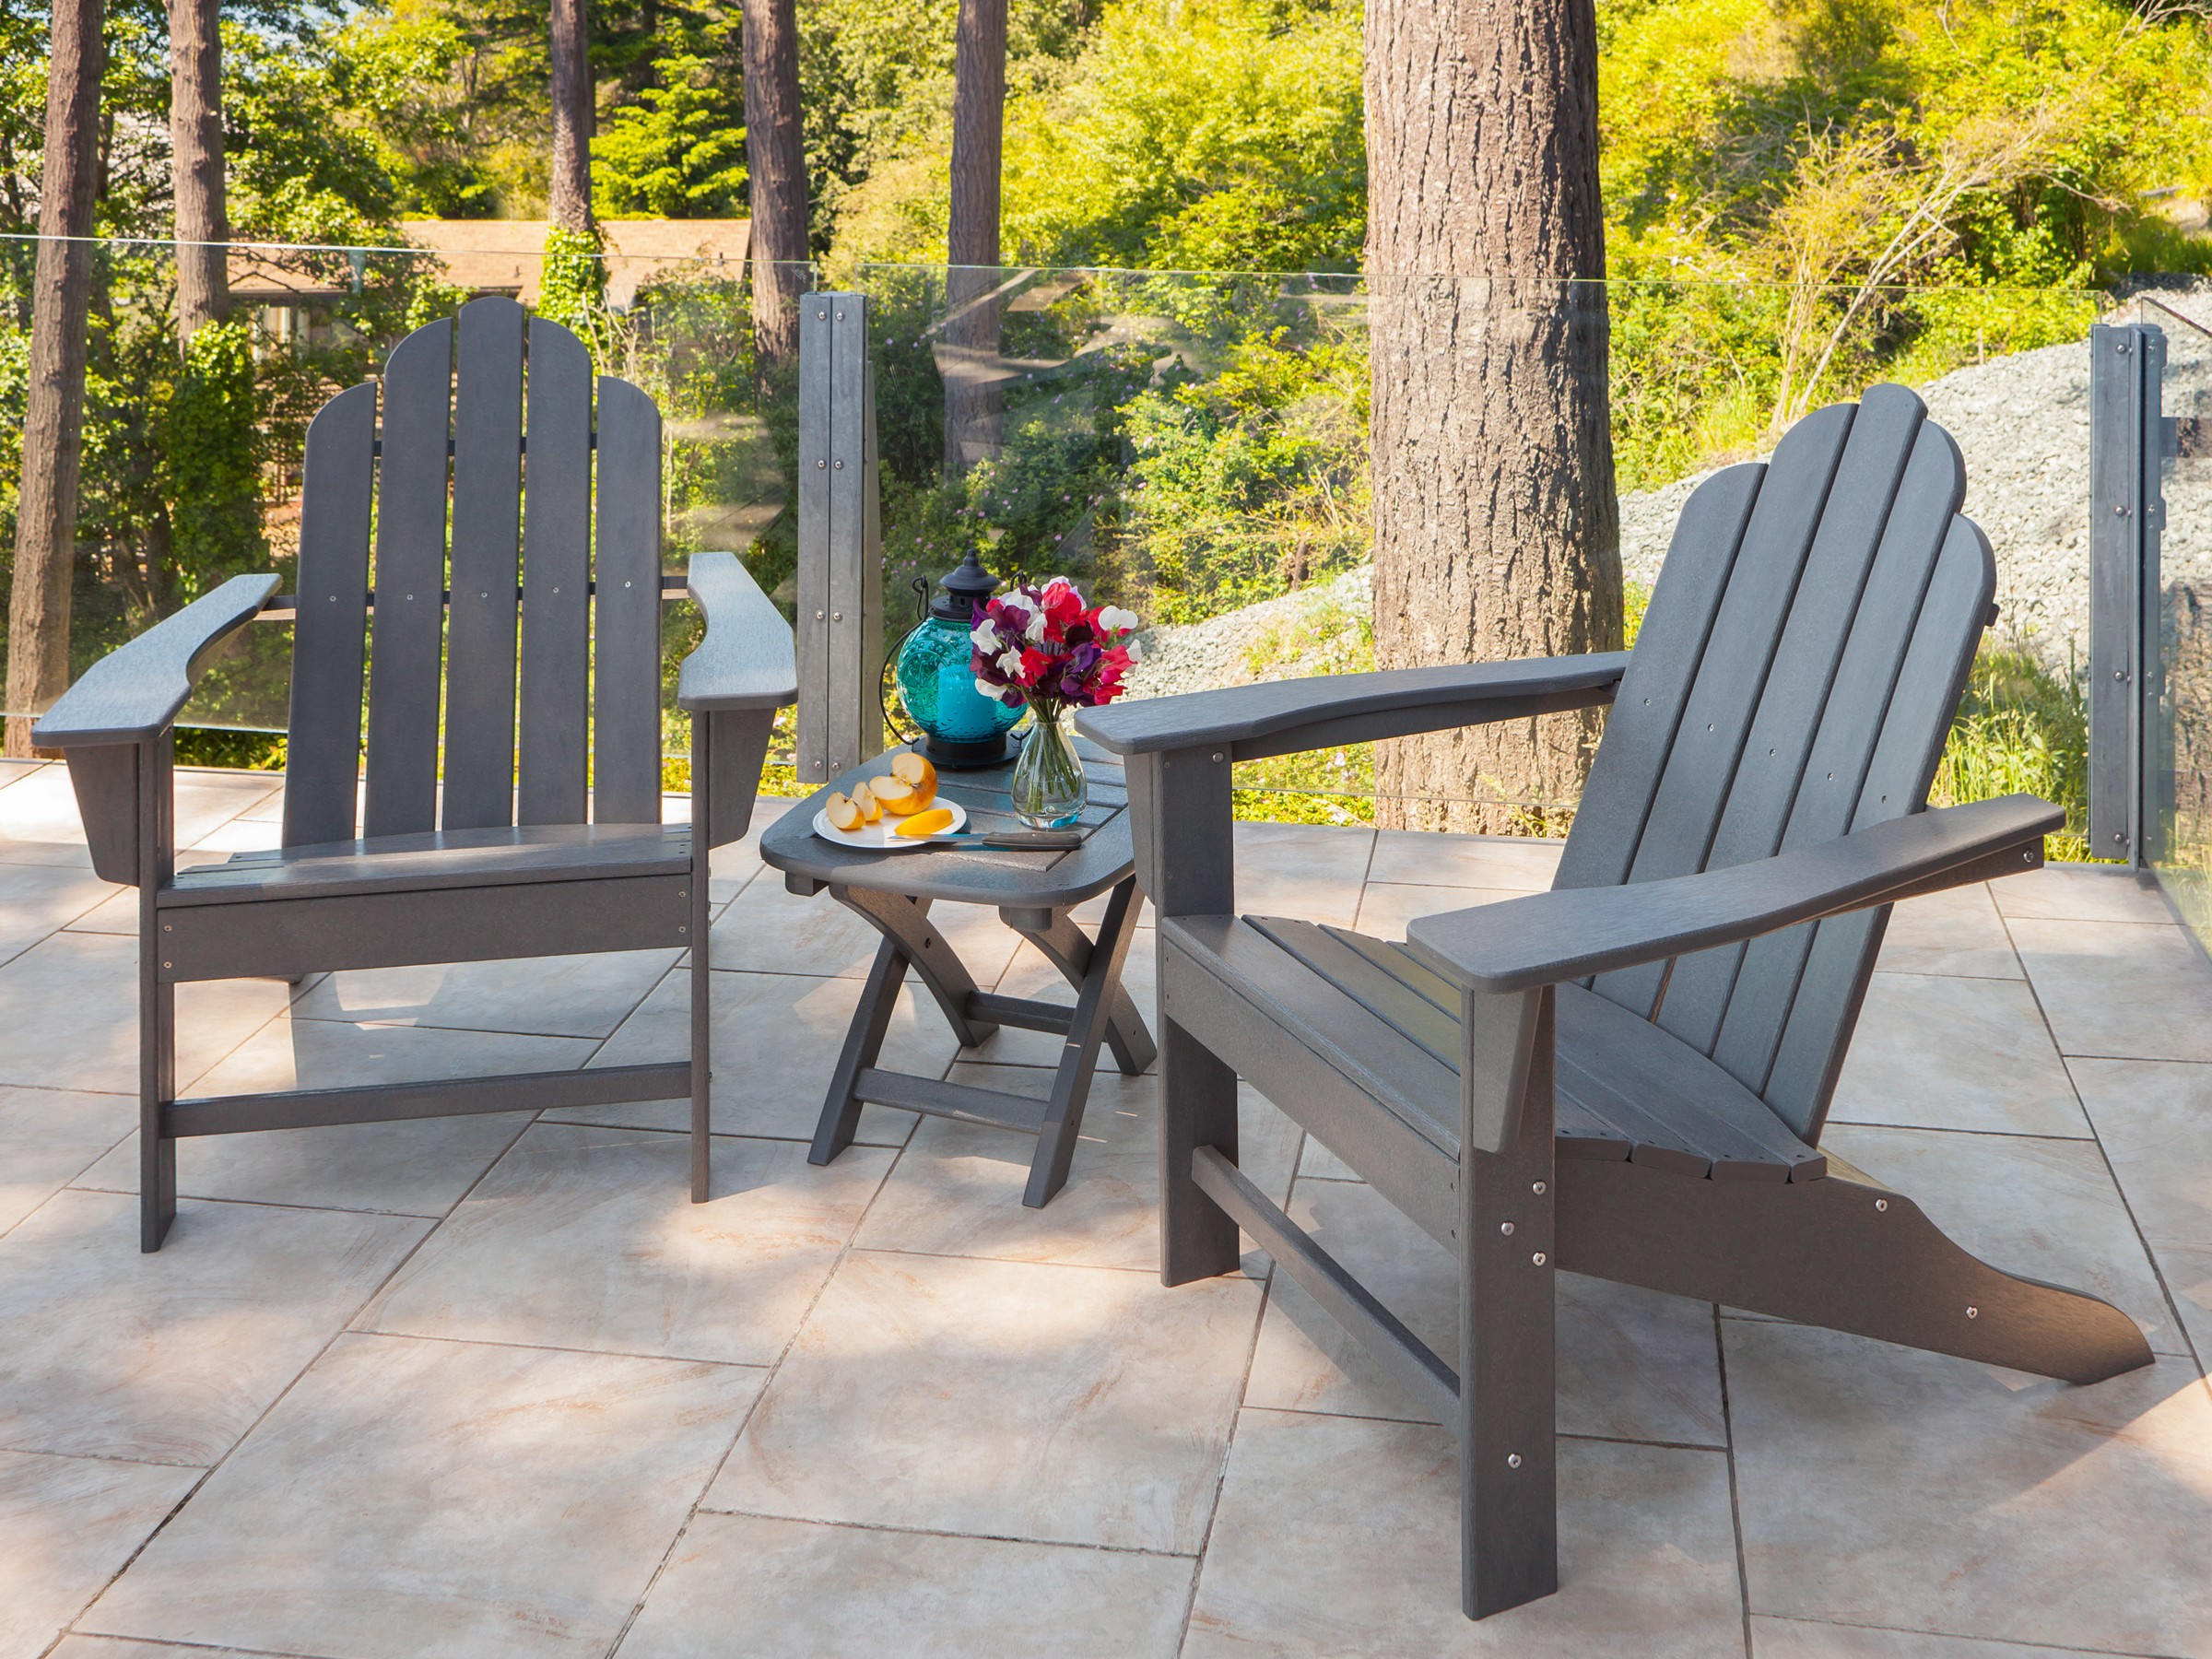 Get to Know More About Tar Patio Chairs